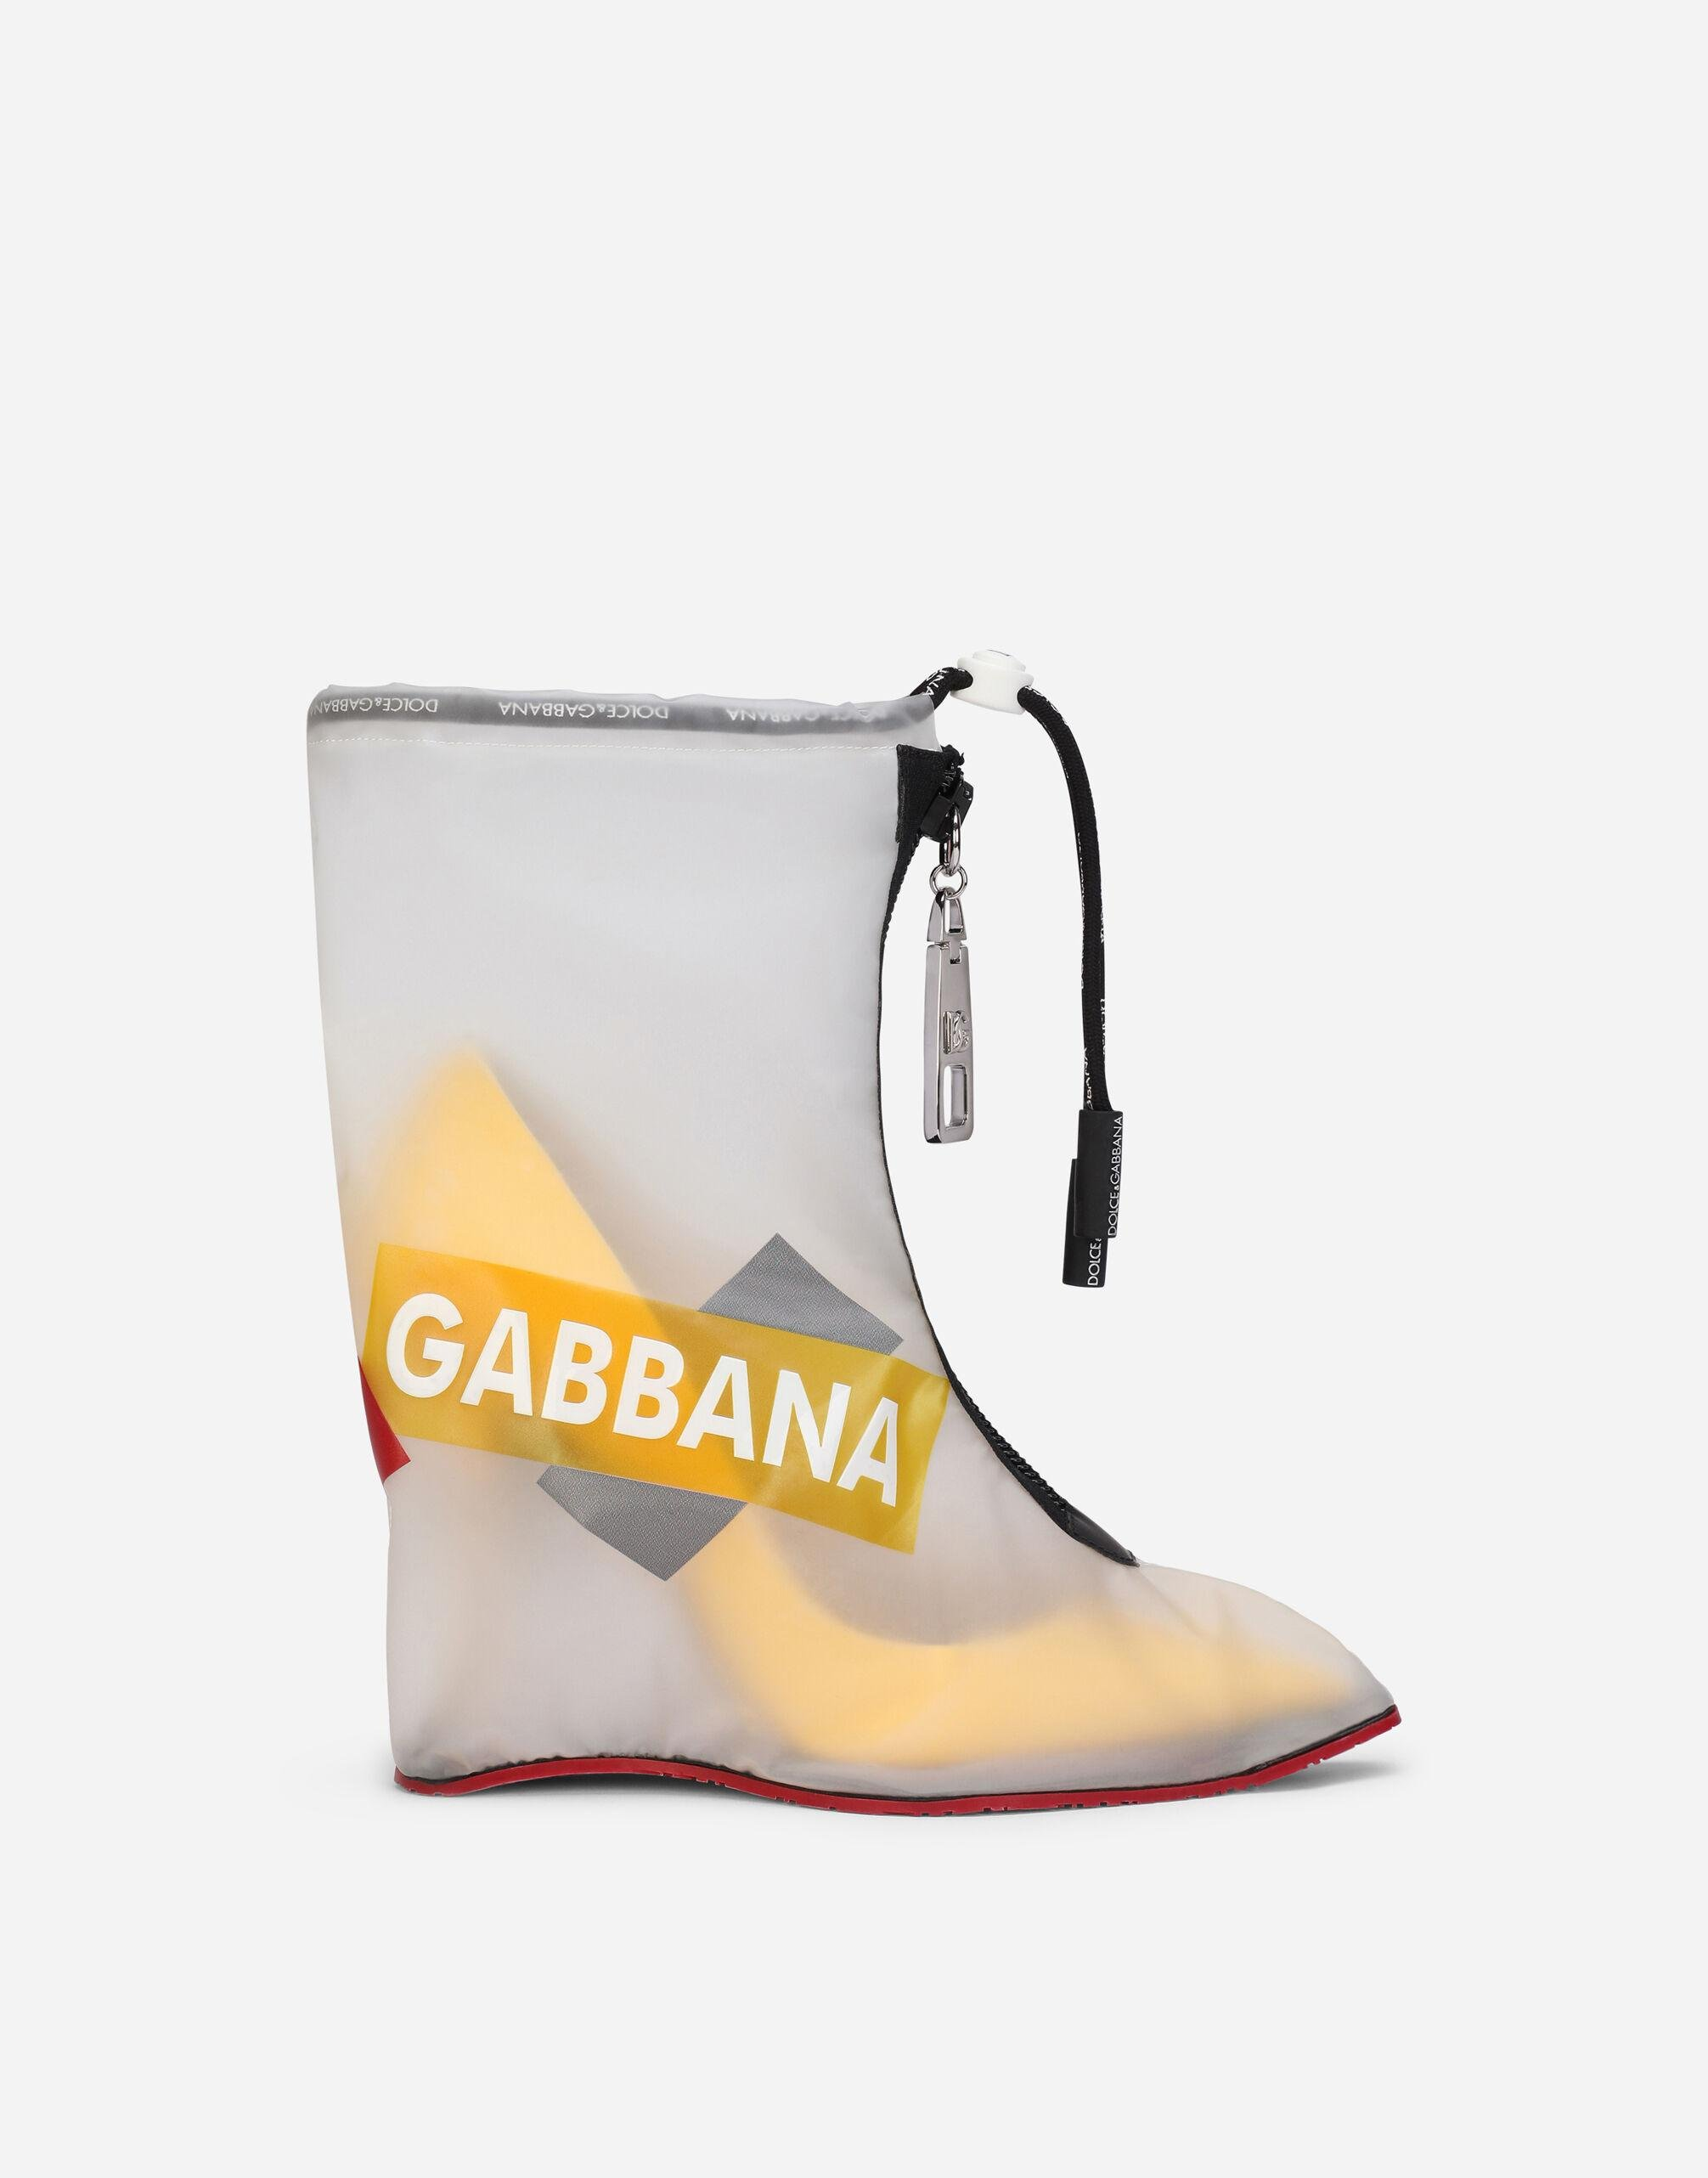 Nylon and rubberized calfskin galoshes with logo